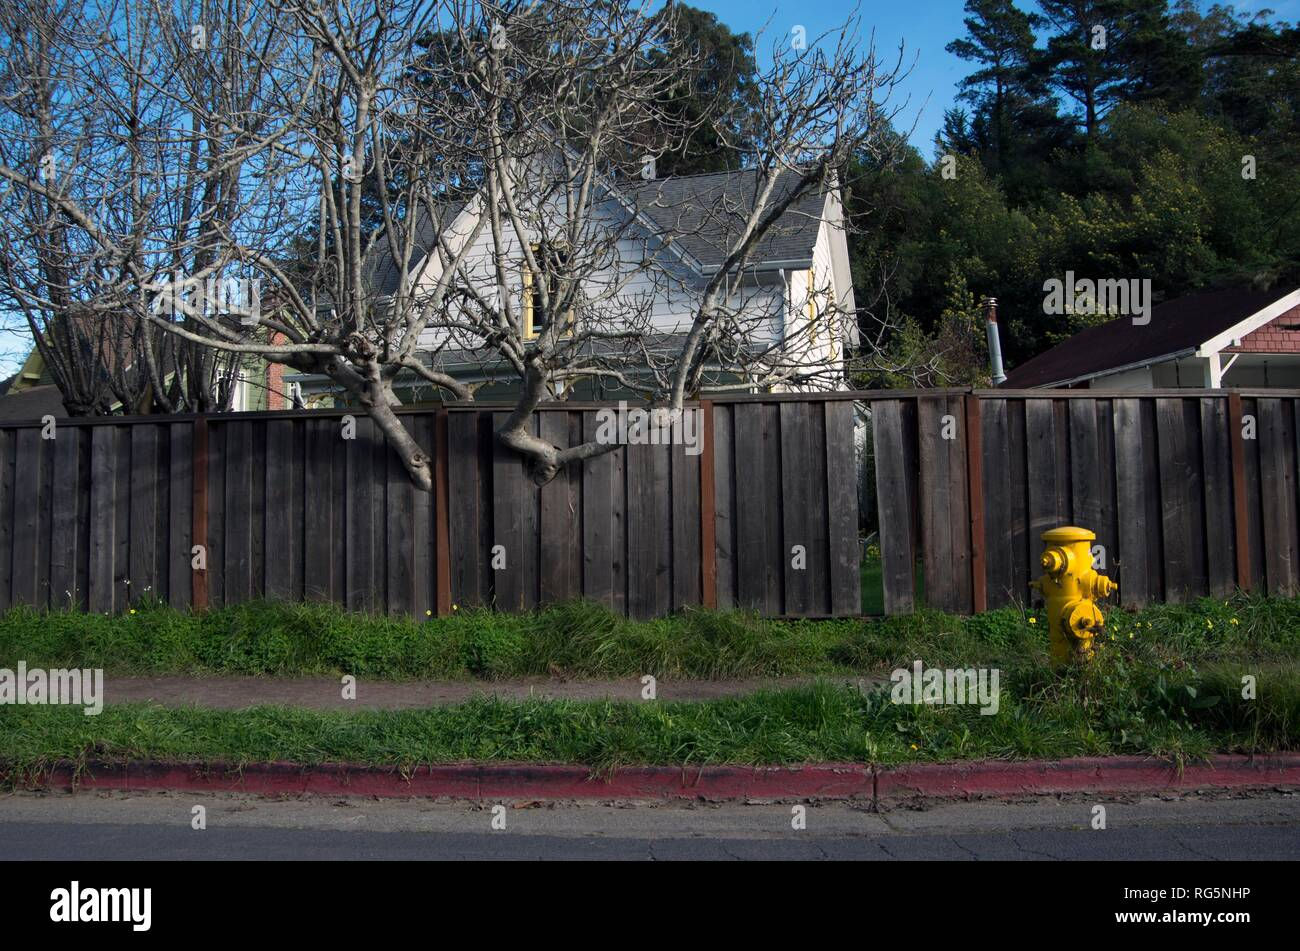 This homeowner built the fence around their yard around the tree, creating an interesting sight. - Stock Image